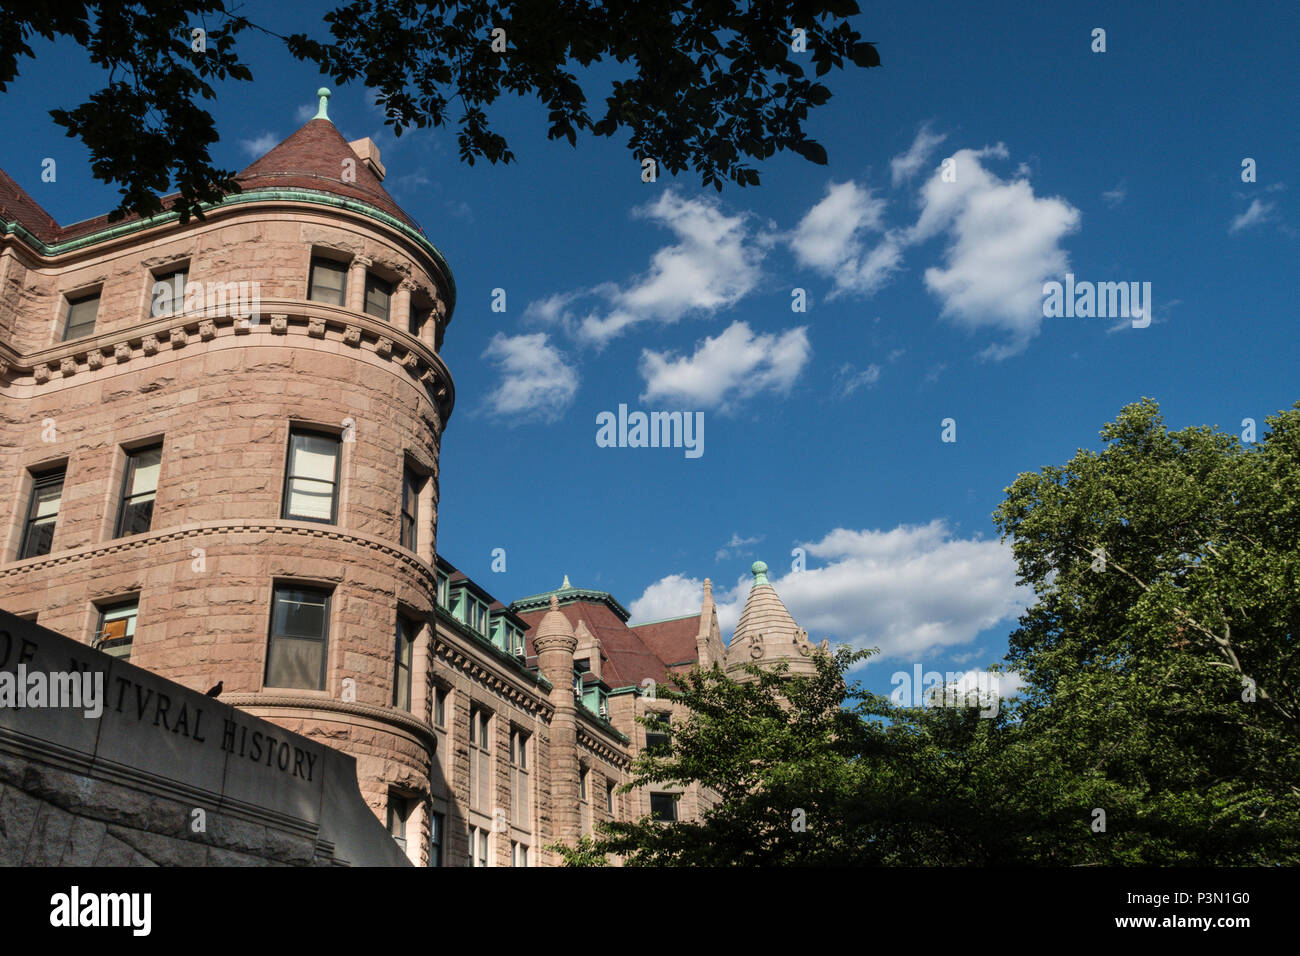 American Museum of Natural History, NYC, USA - Stock Image